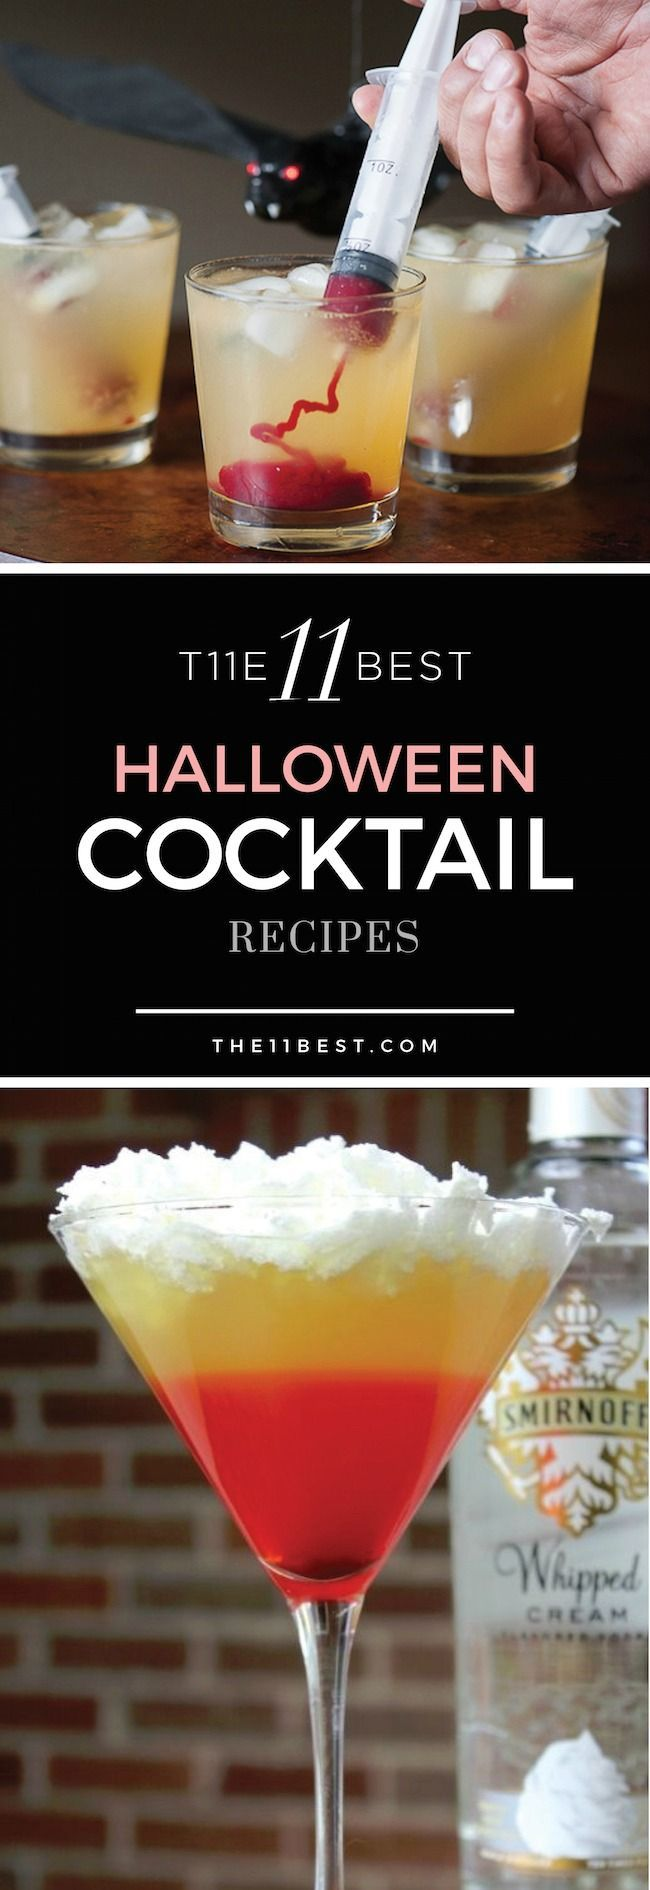 6773 best alcoholic mixed drinks images on pinterest for Fun alcoholic drink recipes